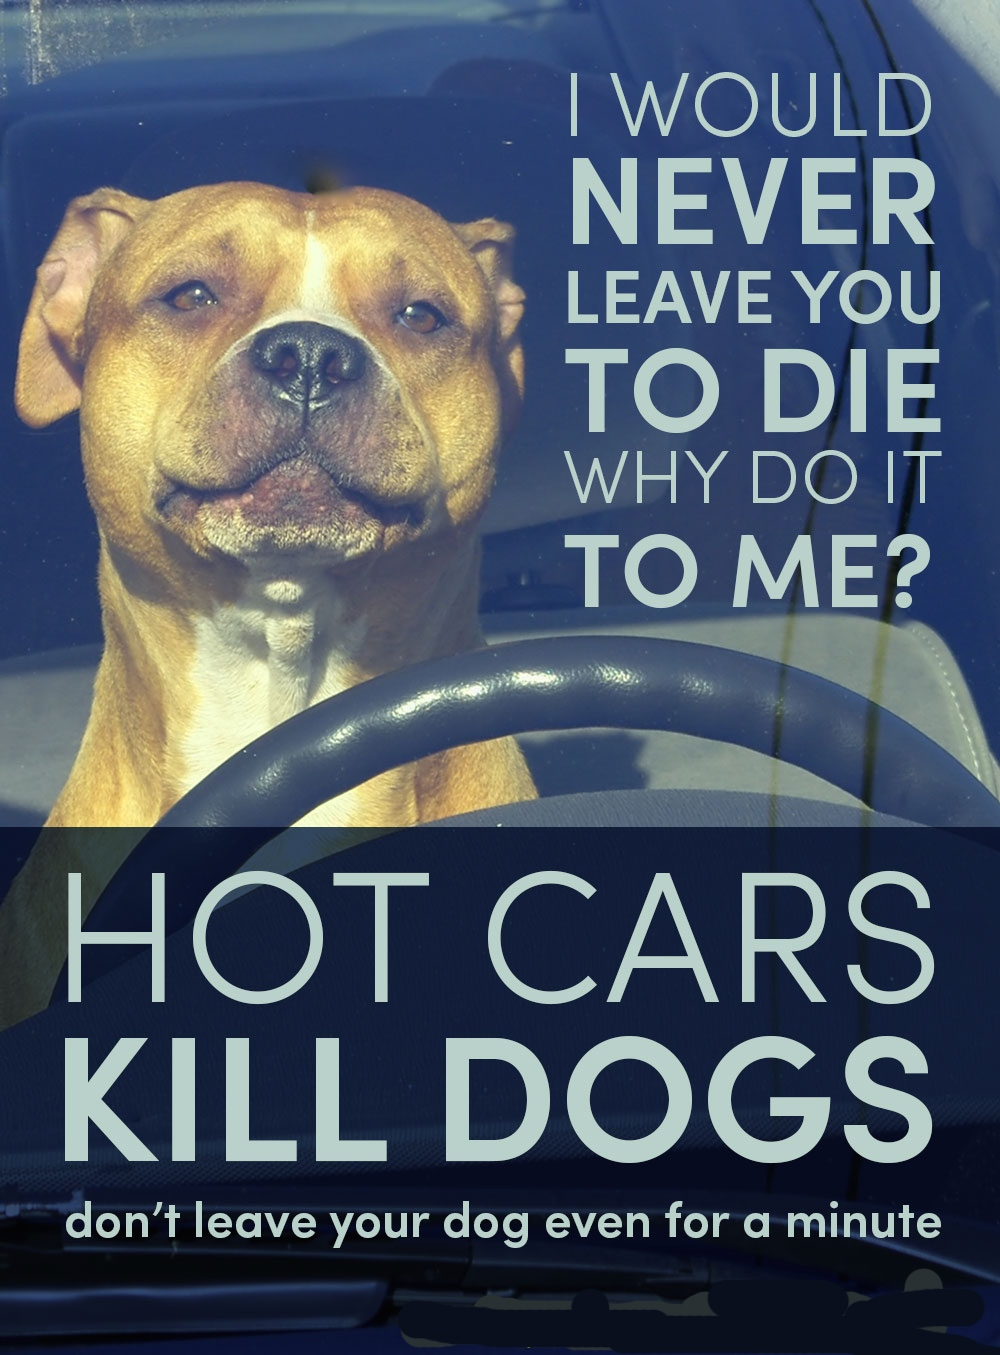 Pet News | Dogs Die in Hot Cars - No Excuses | Andover & Villages